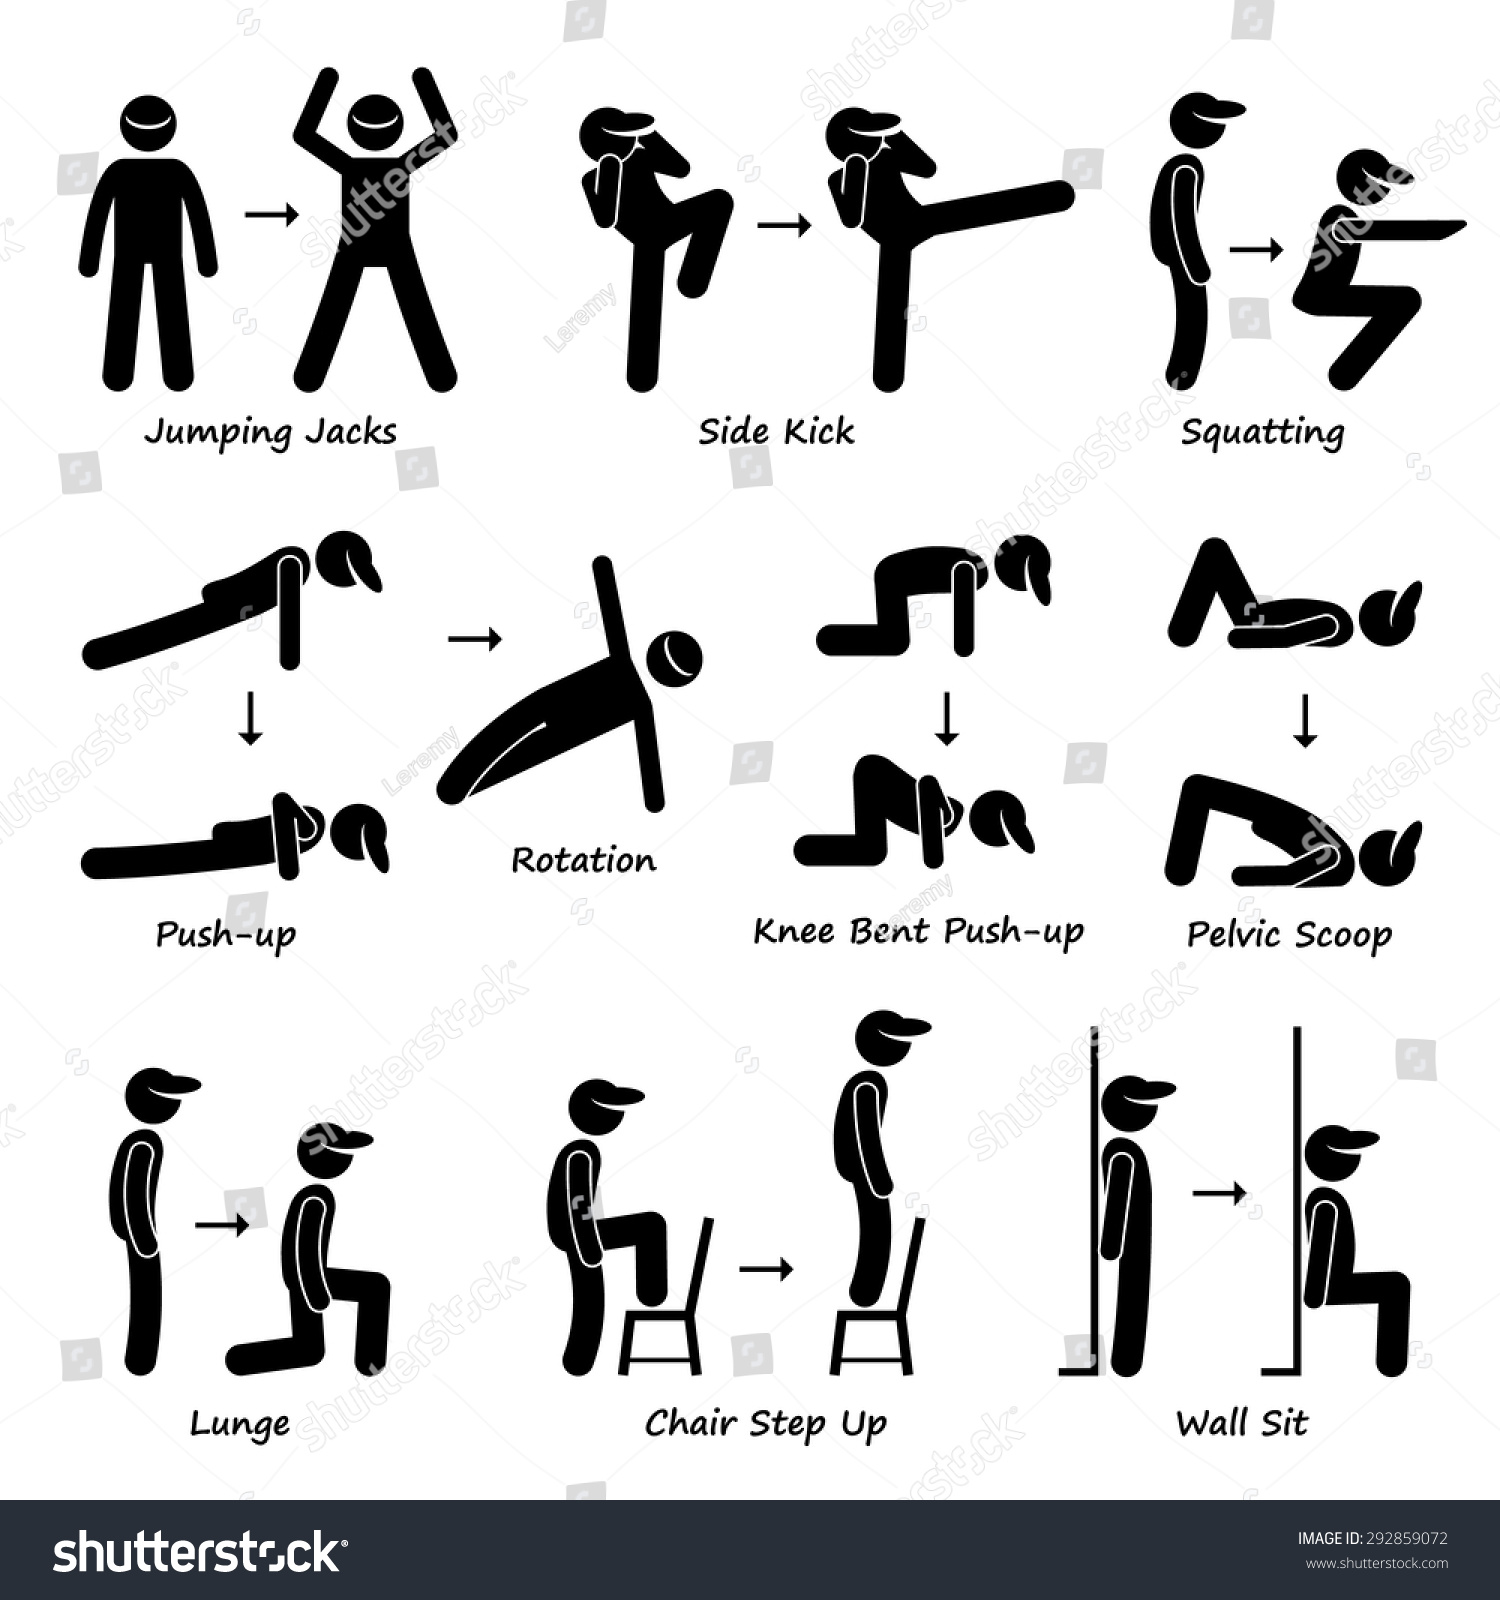 body workout exercise fitness training set stock vector royalty Jumping Jacks 500 Calories body workout exercise fitness training set 1 stick figure pictogram icons